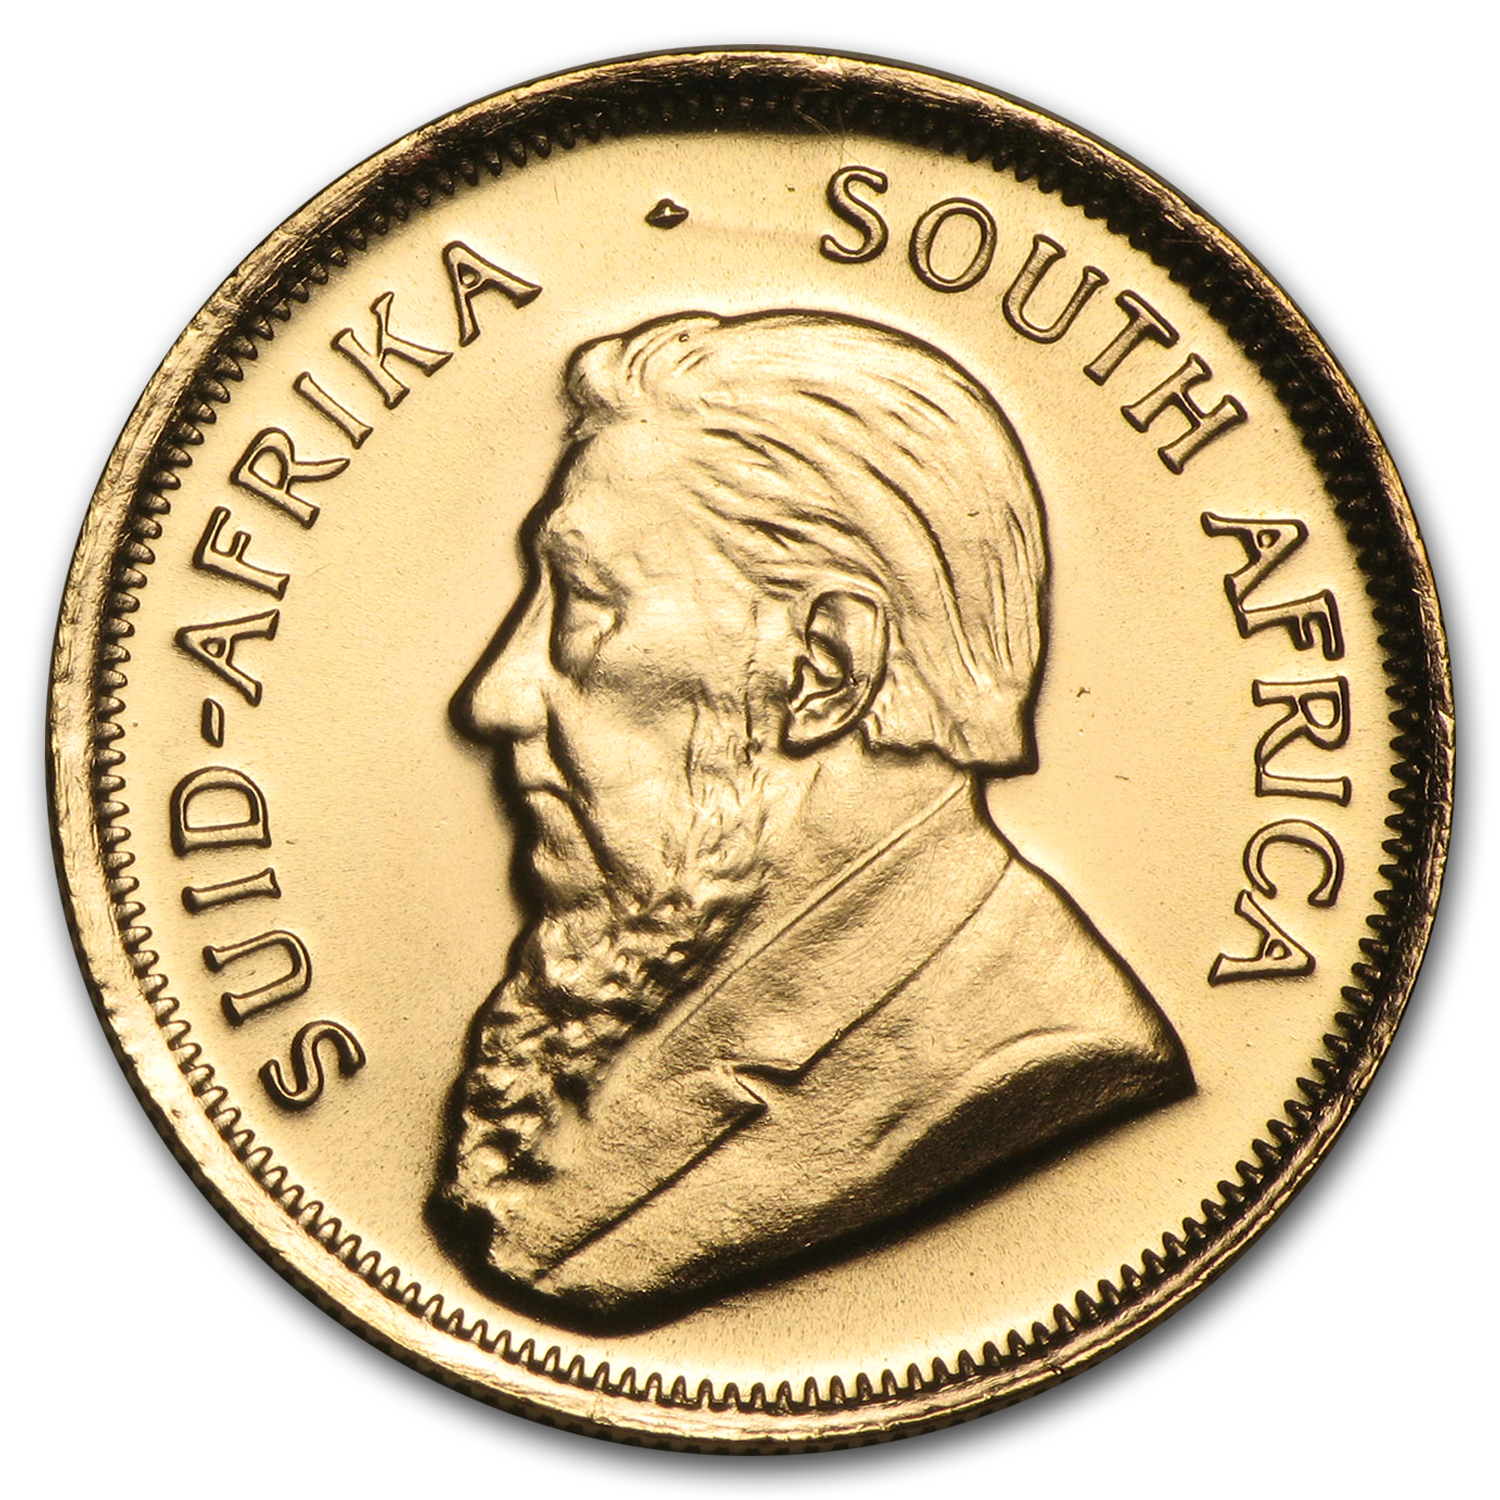 1982 South Africa 1/4 oz Gold Krugerrand